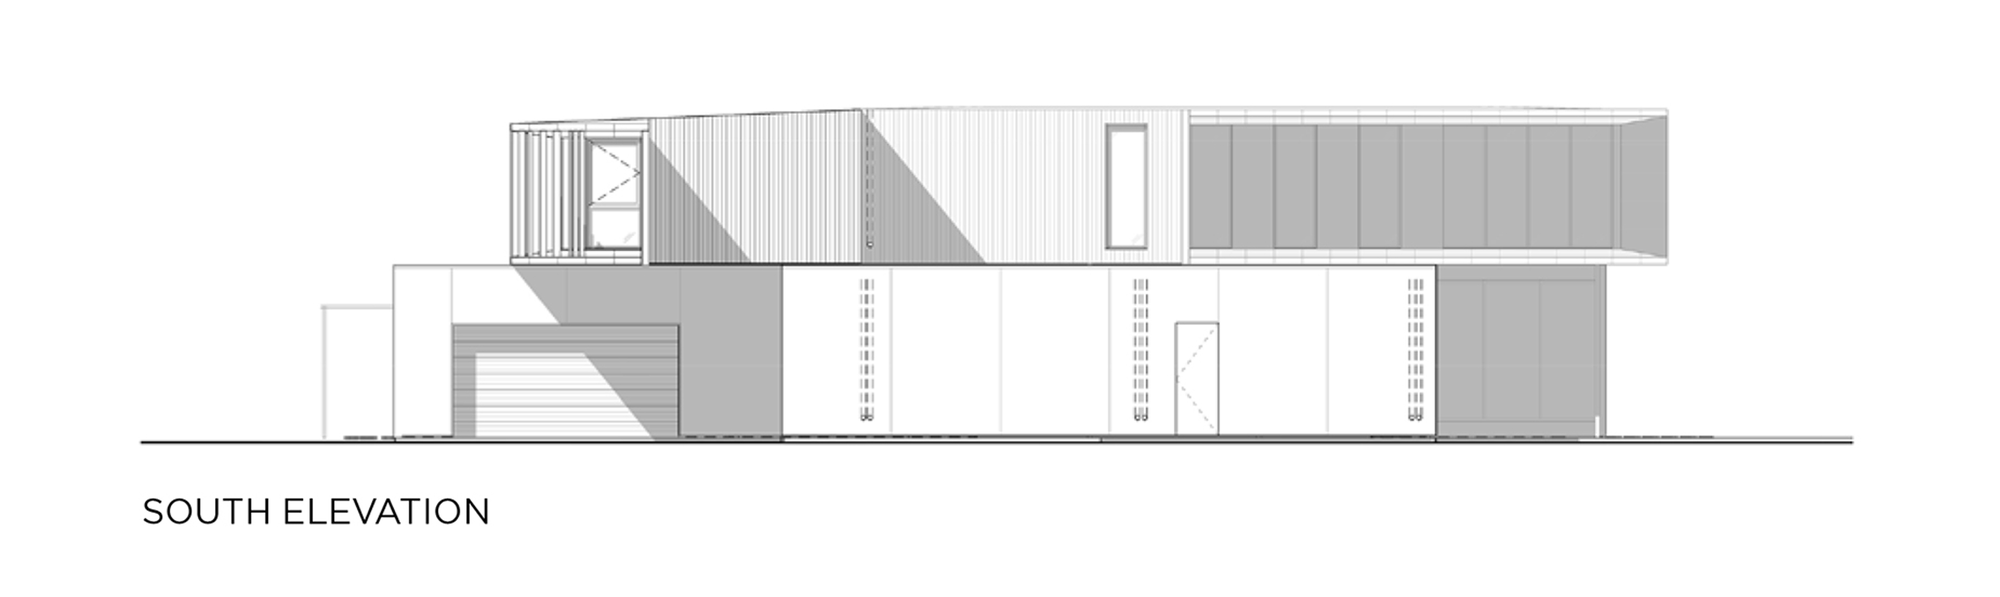 baulinder-haus-hufft-projects_south_elevation